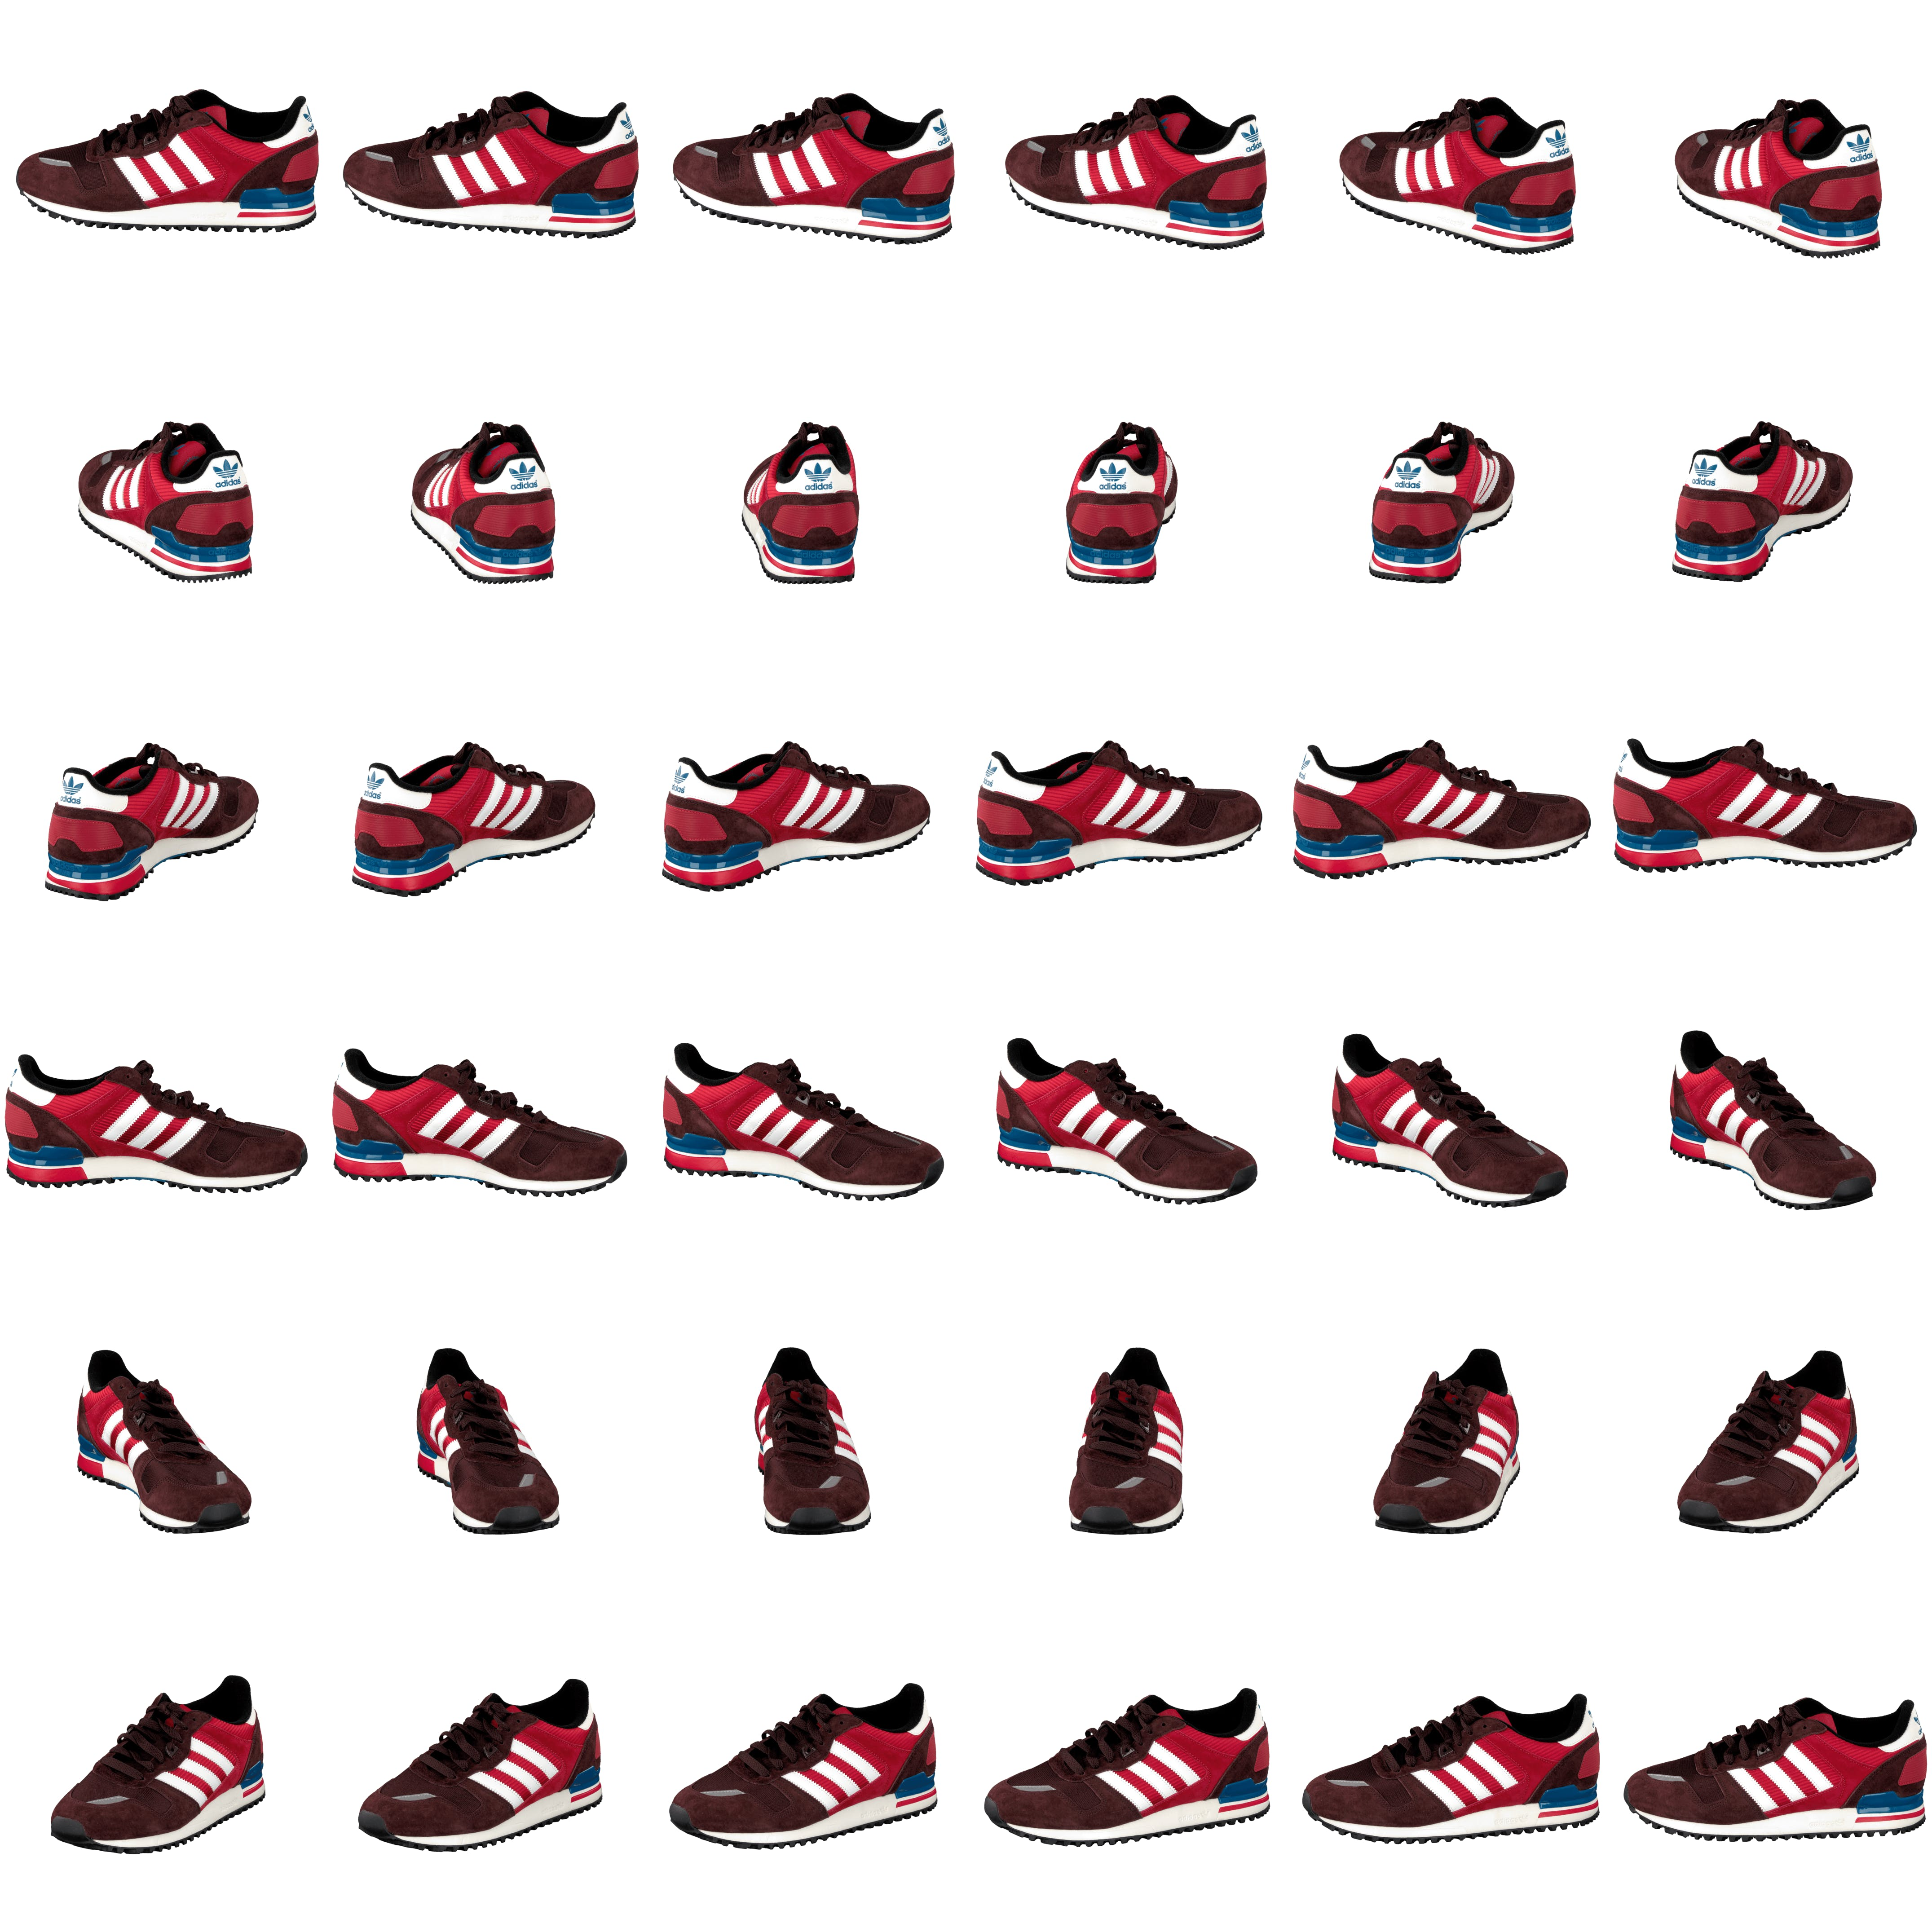 watch bd403 ea456 Buy adidas Originals Zx 700 Night Red Ftwr White Power Red red Shoes Online    FOOTWAY.co.uk